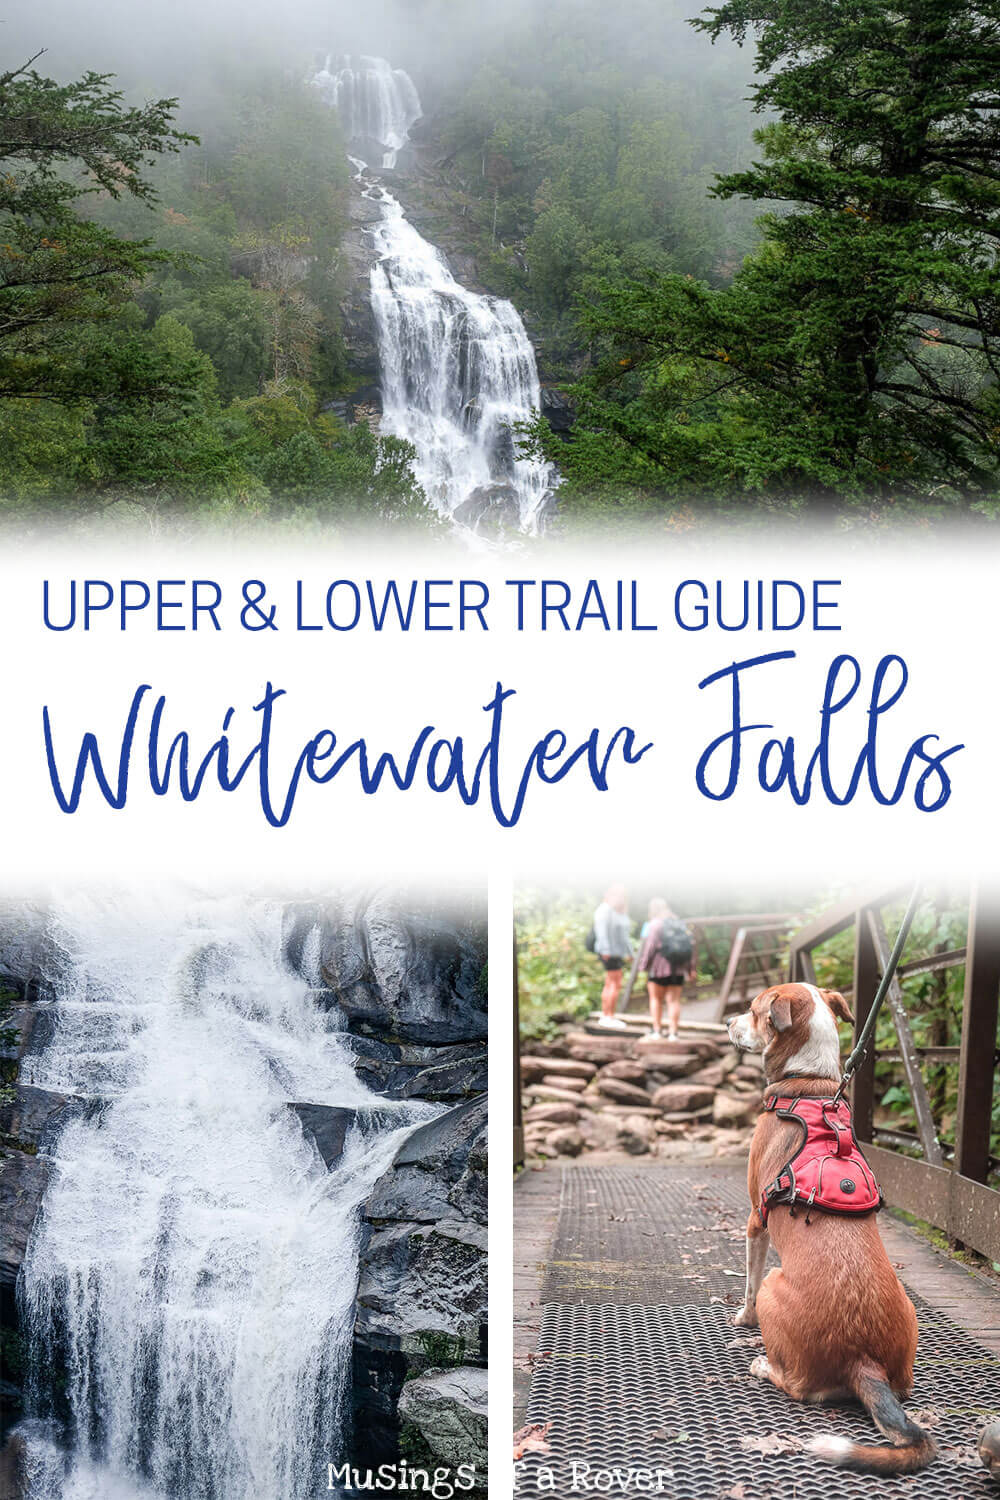 The Upper & Lower Whitewater Falls Trails lead to two amazing +400ft waterfalls. Both have incredible overlooks. And if you like hiking as well then you're in luck. The Lower Whitewater Falls trail is a moderate 5 mile out and back hike. The Upper Whitewater Falls overlook is less than a half mile from the parking lot. Which makes visiting both the perfect day trip from Greenville, SC!